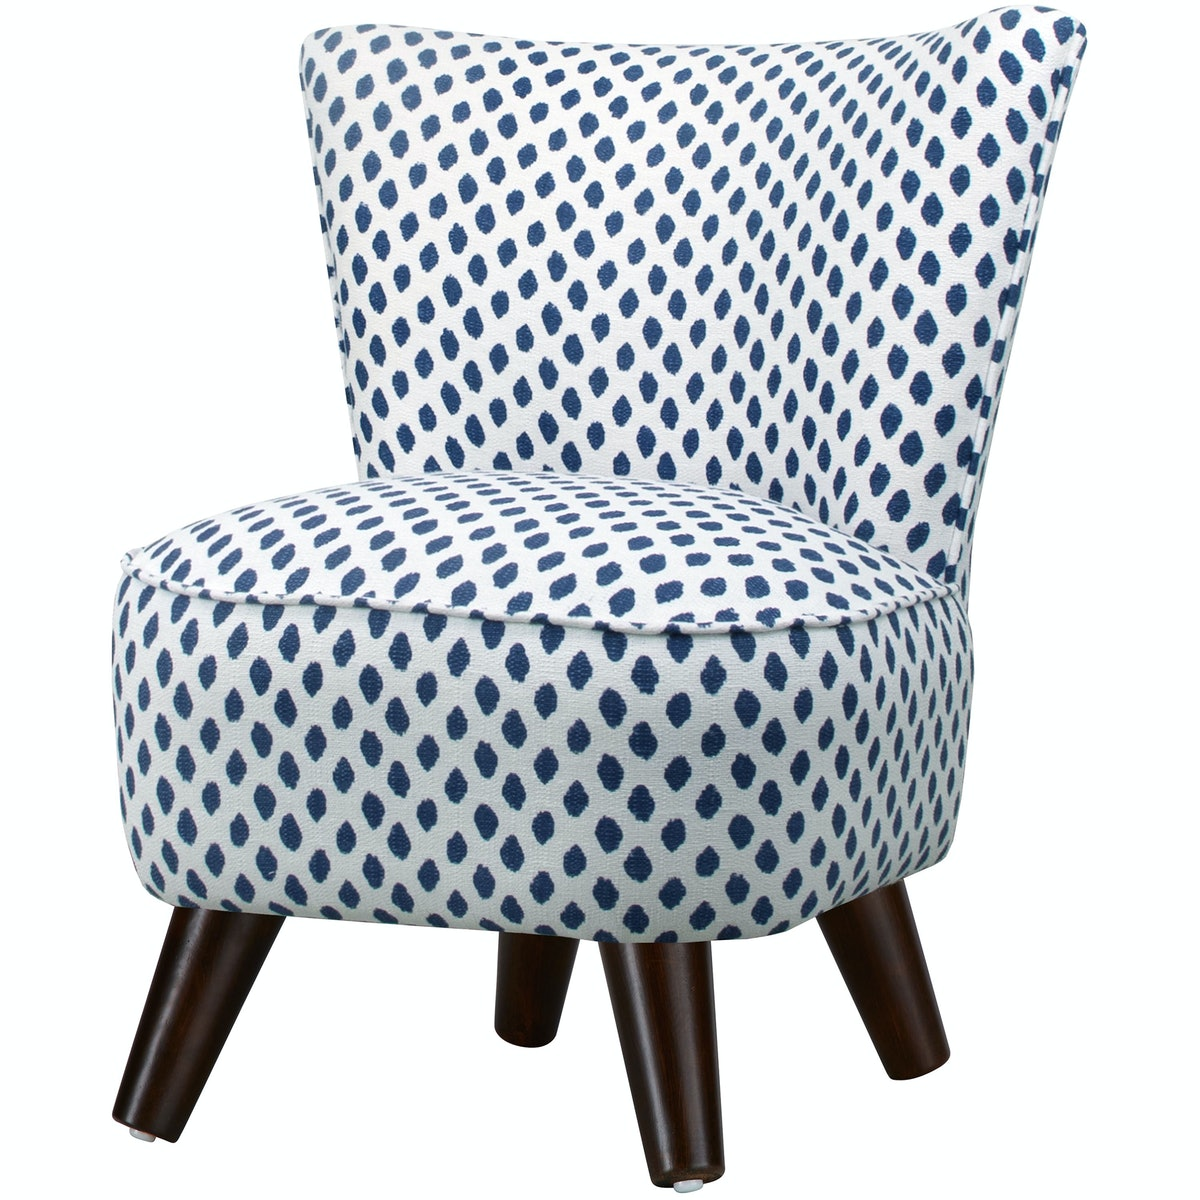 Land of Nod chair